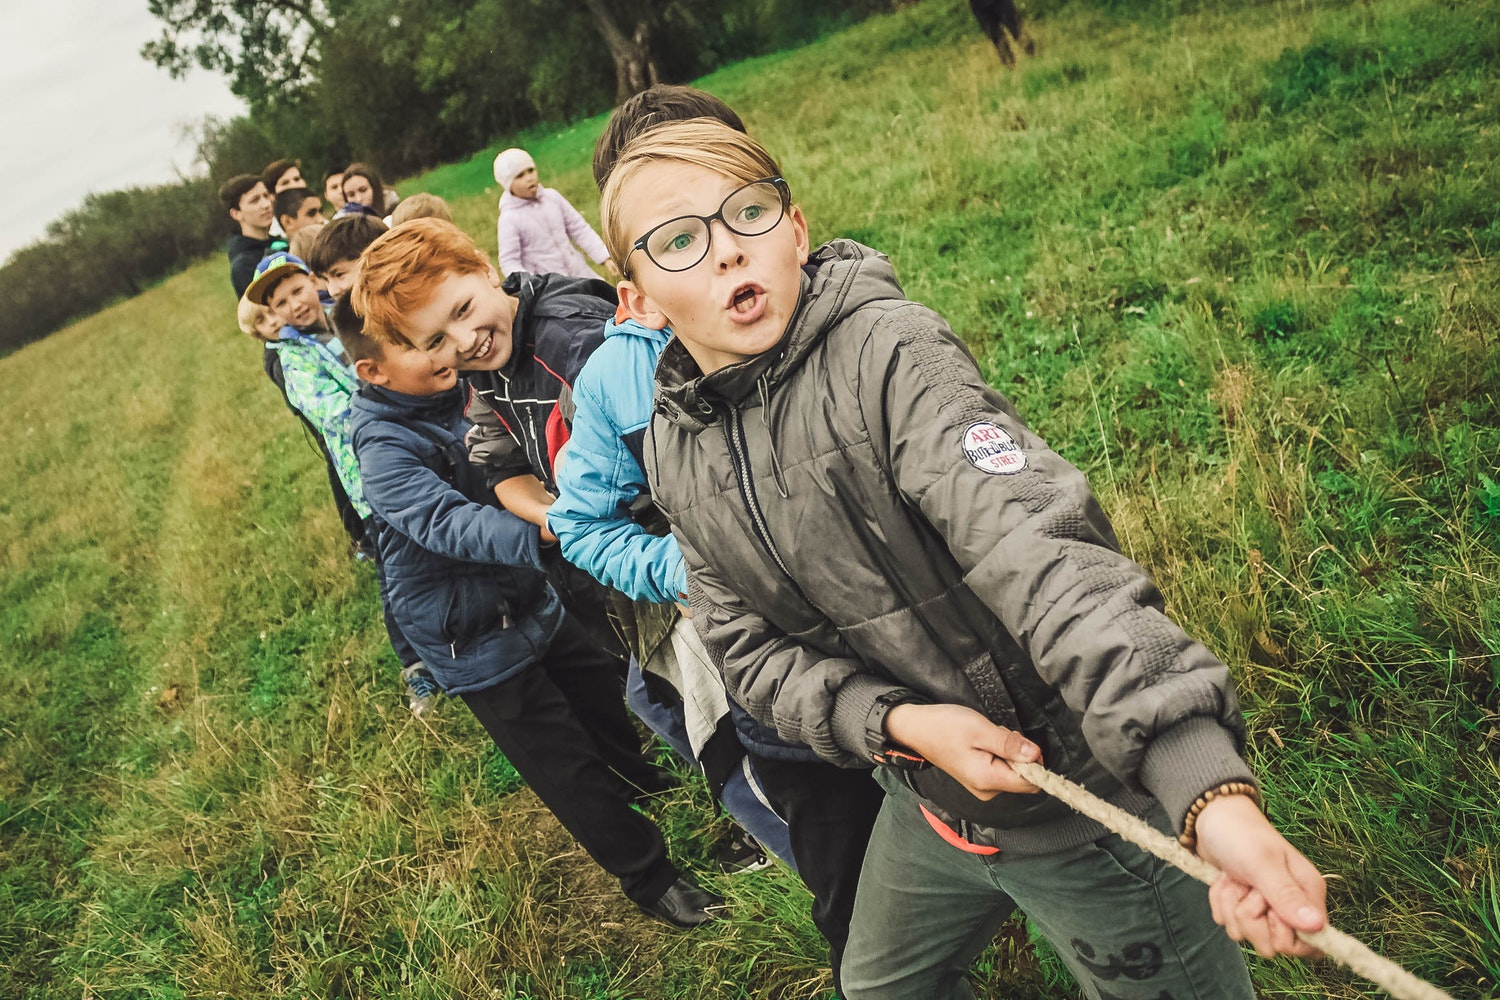 Kids To Spend More Time Playing Outdoors_5